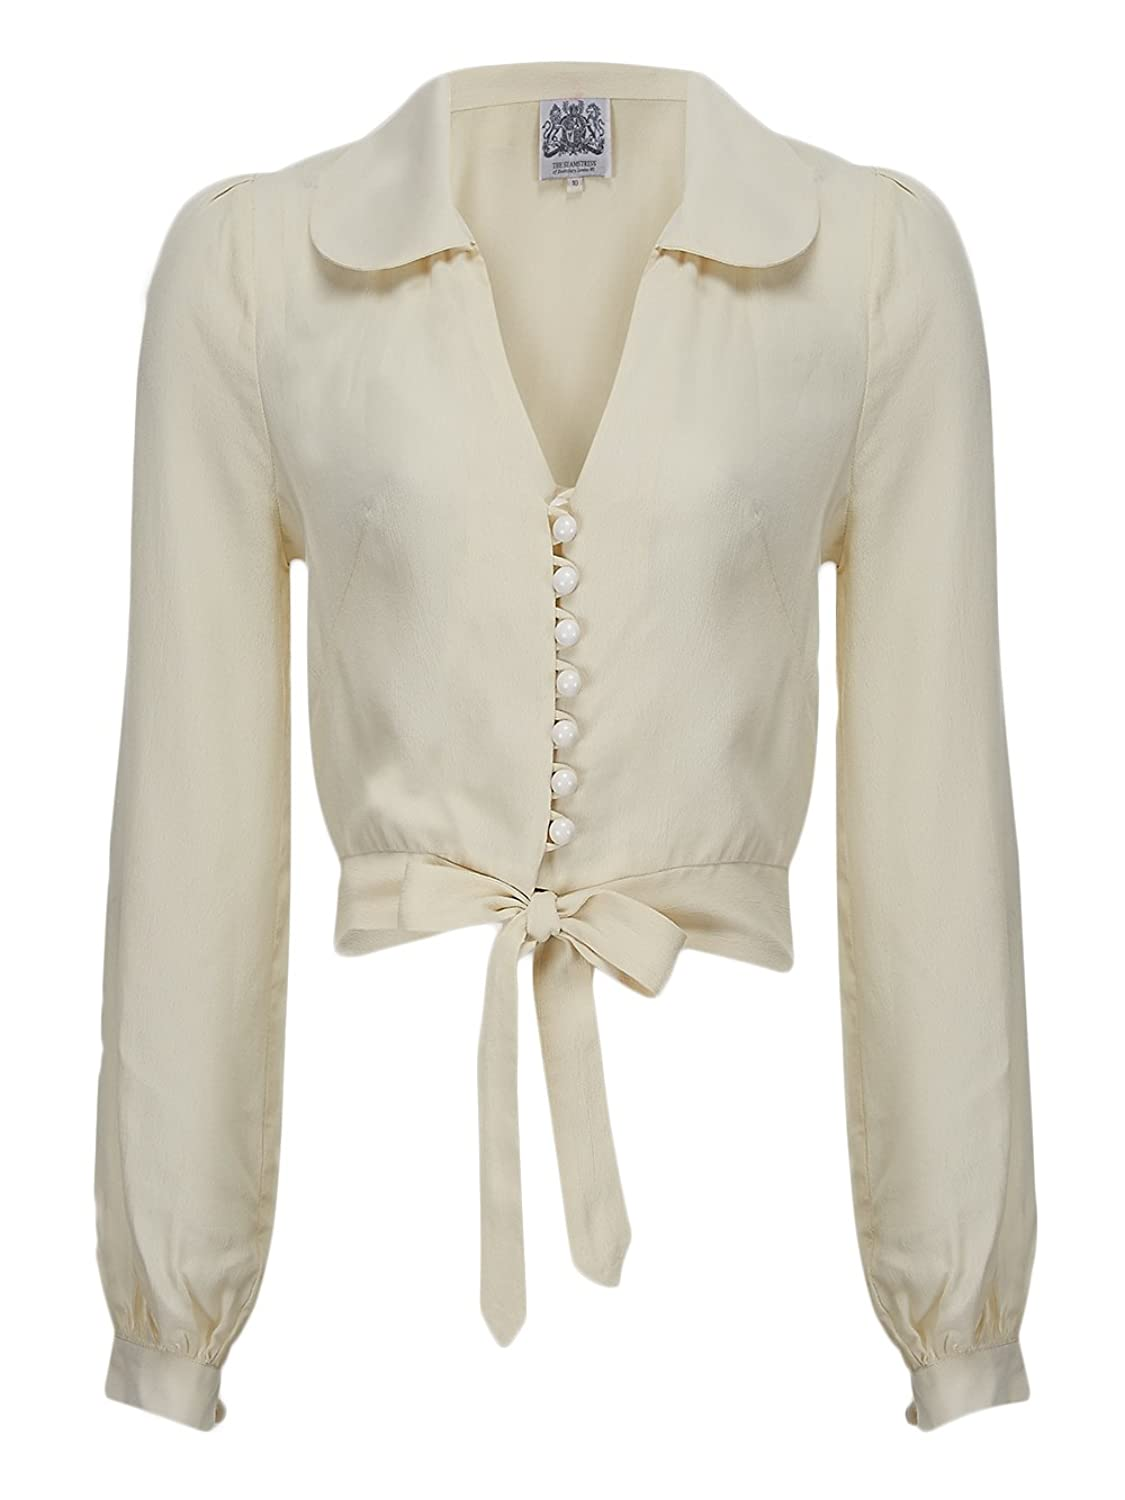 Vintage & Retro Shirts, Halter Tops, Blouses 1940s/50s Authentic Vintage Inspired Button Up Tie Down Blouse in Cream £39.00 AT vintagedancer.com